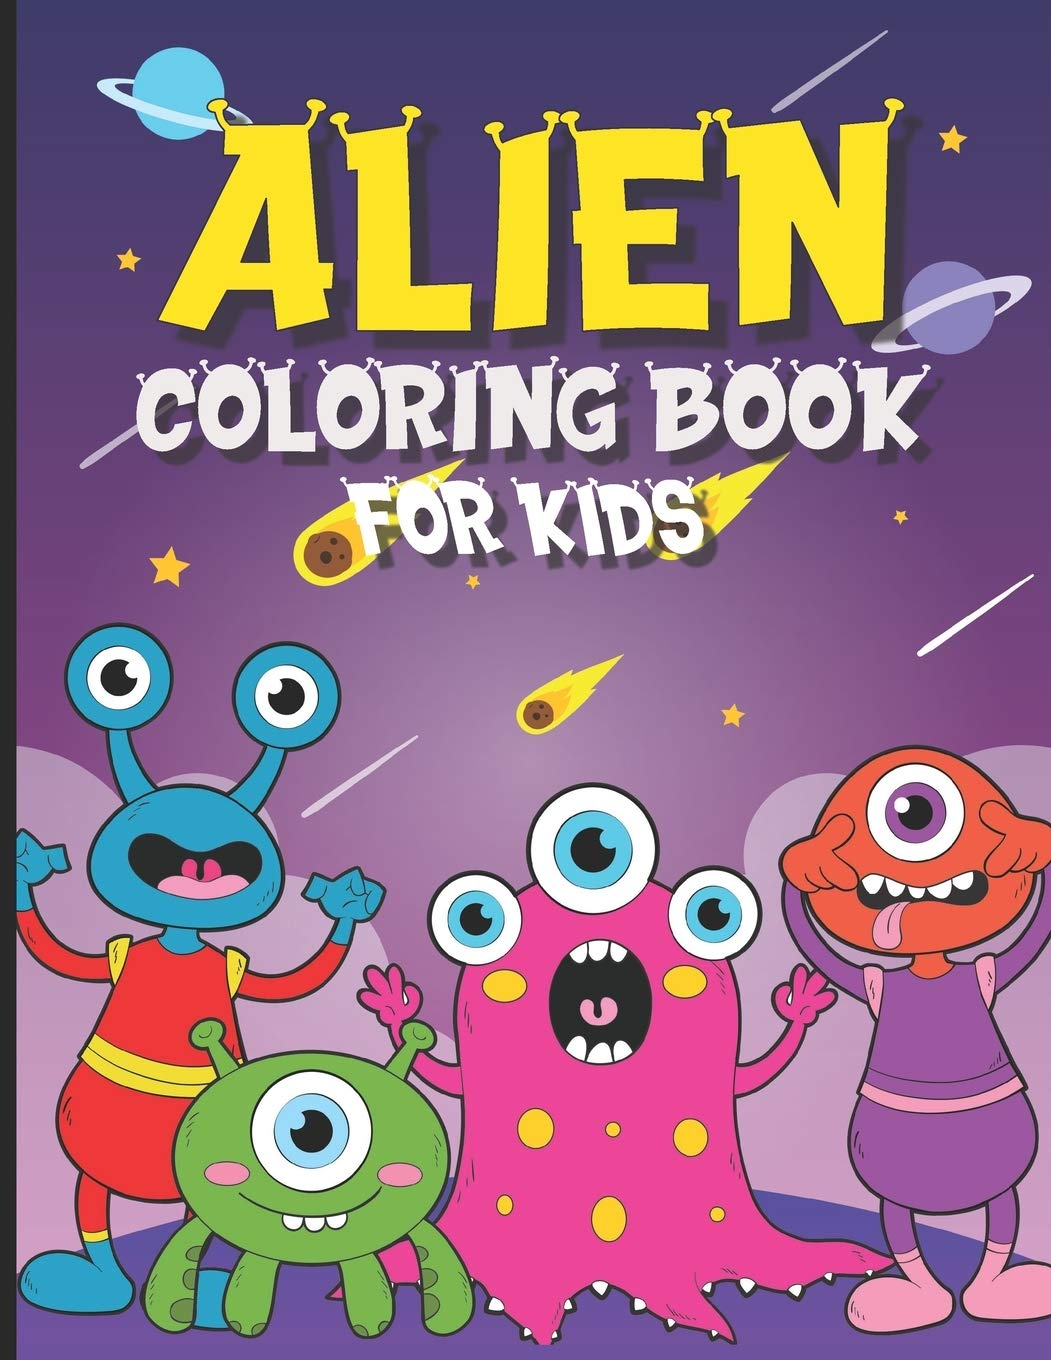 Alien Coloring Book For Kids 30 Coloring Pages For Boys And Girls Ages 4 8 Larson Laura 9798689680675 Amazon Com Books